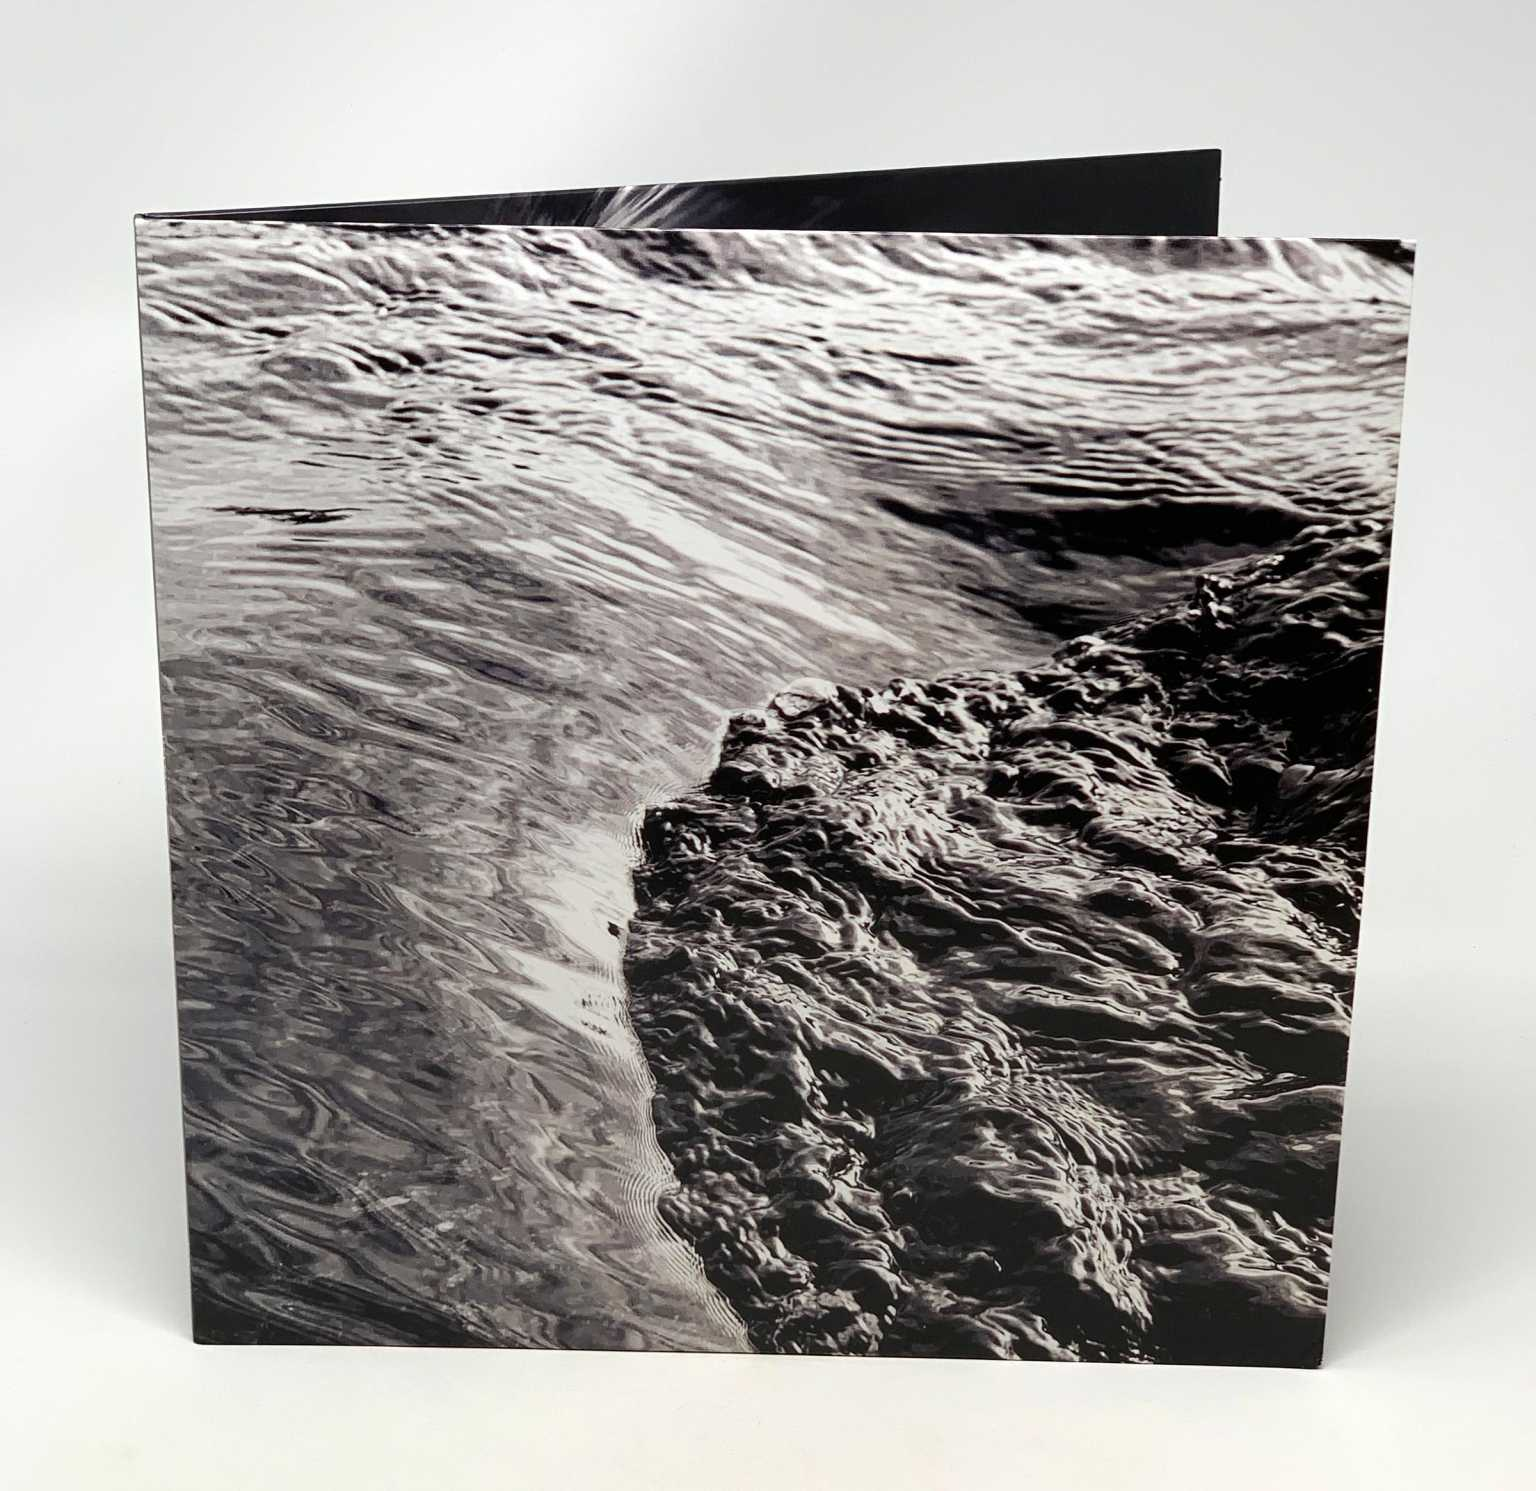 Running water photograph on cover of Alex Banks' album, Beneath the Surface